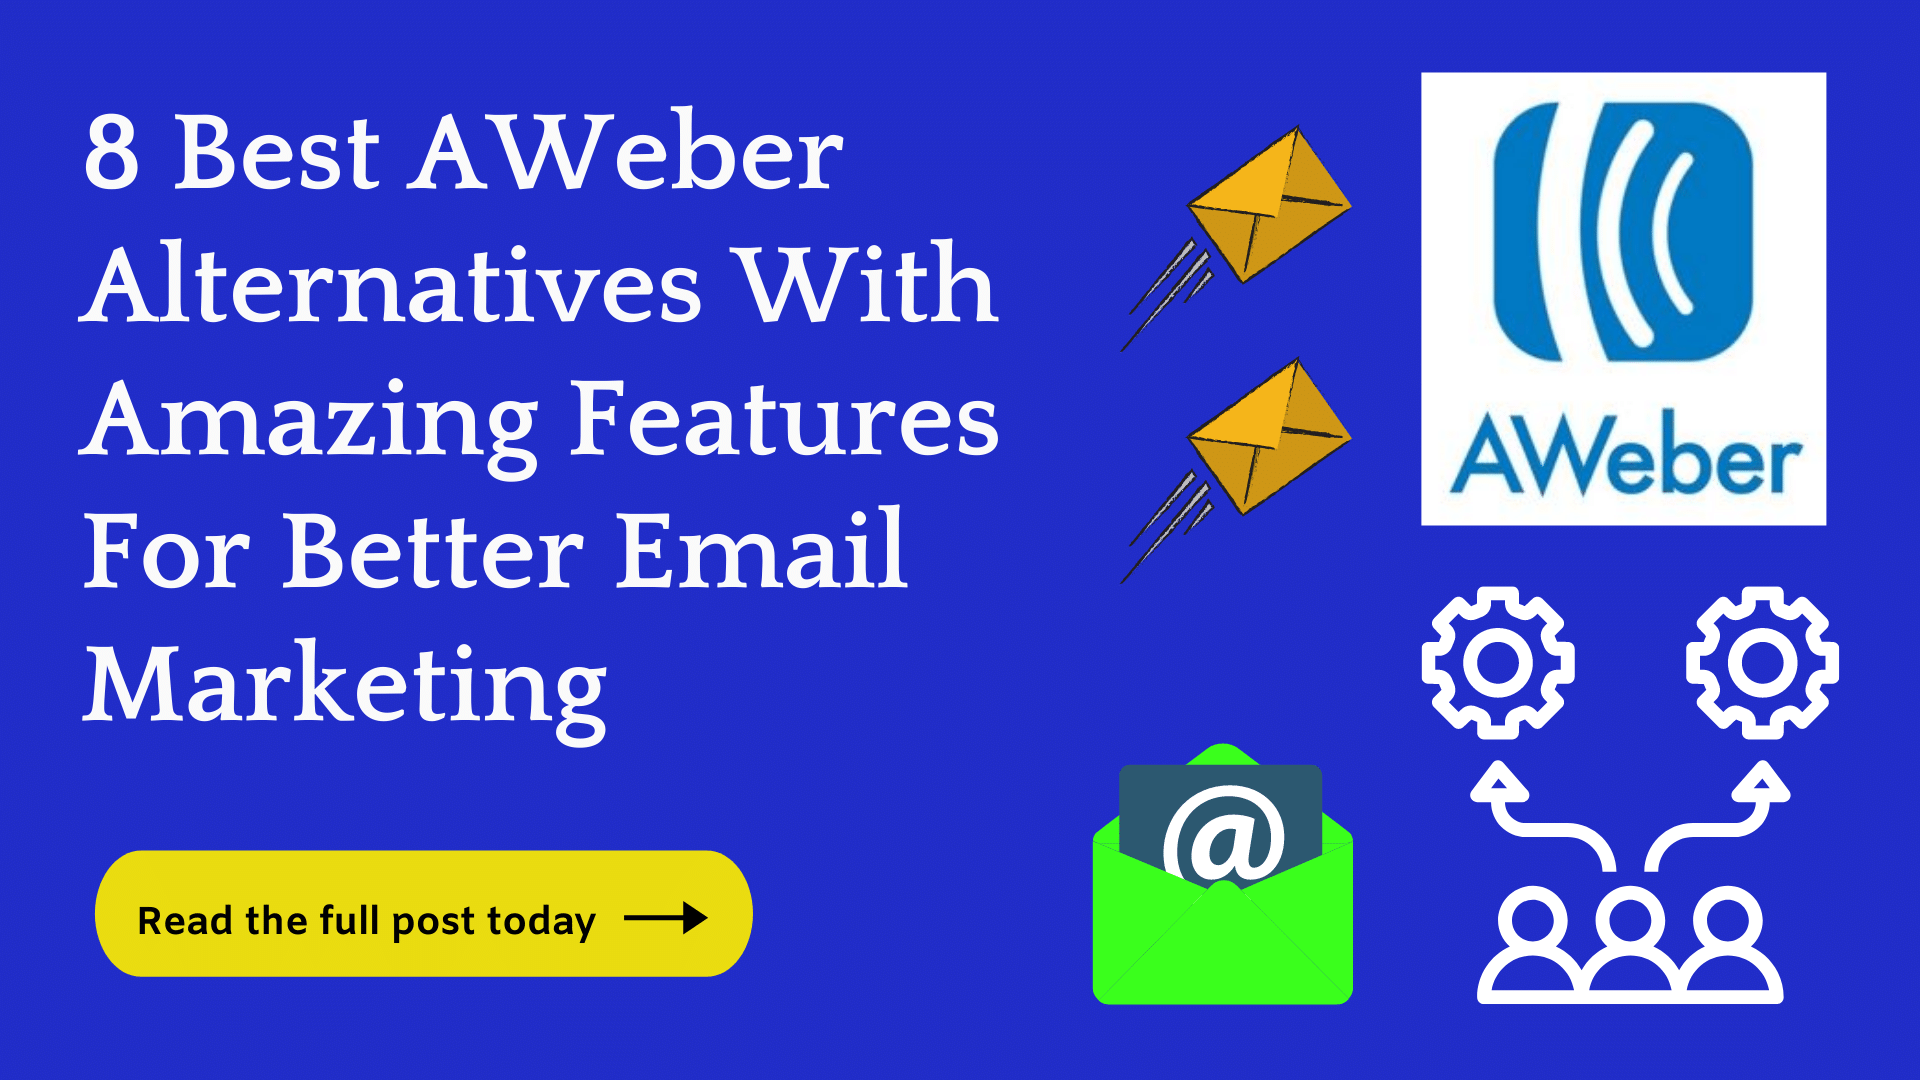 8 Best AWeber Alternatives With Advanced Features (2021)